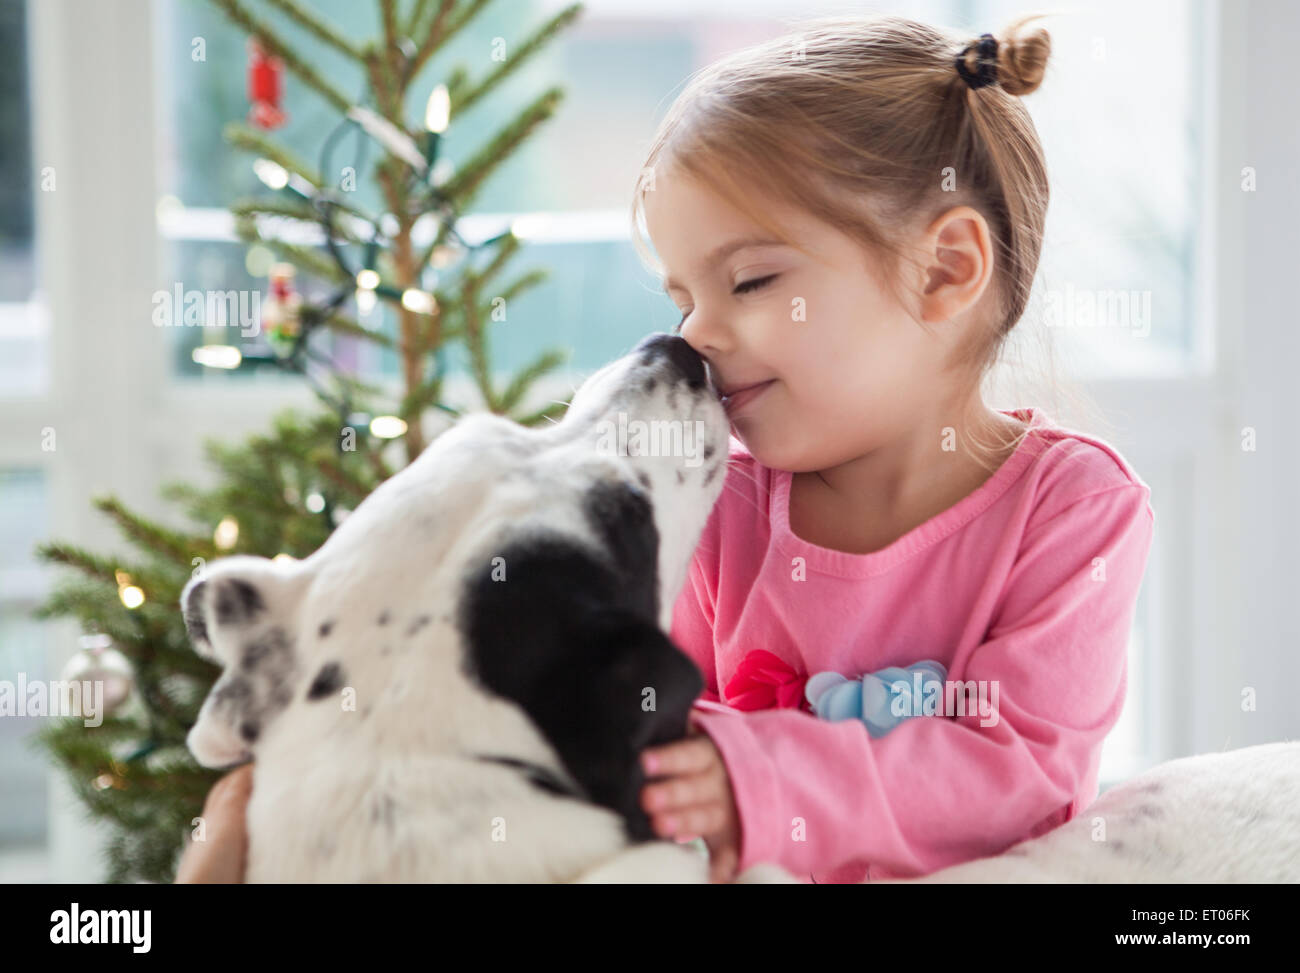 Dog licking girl's face - Stock Image